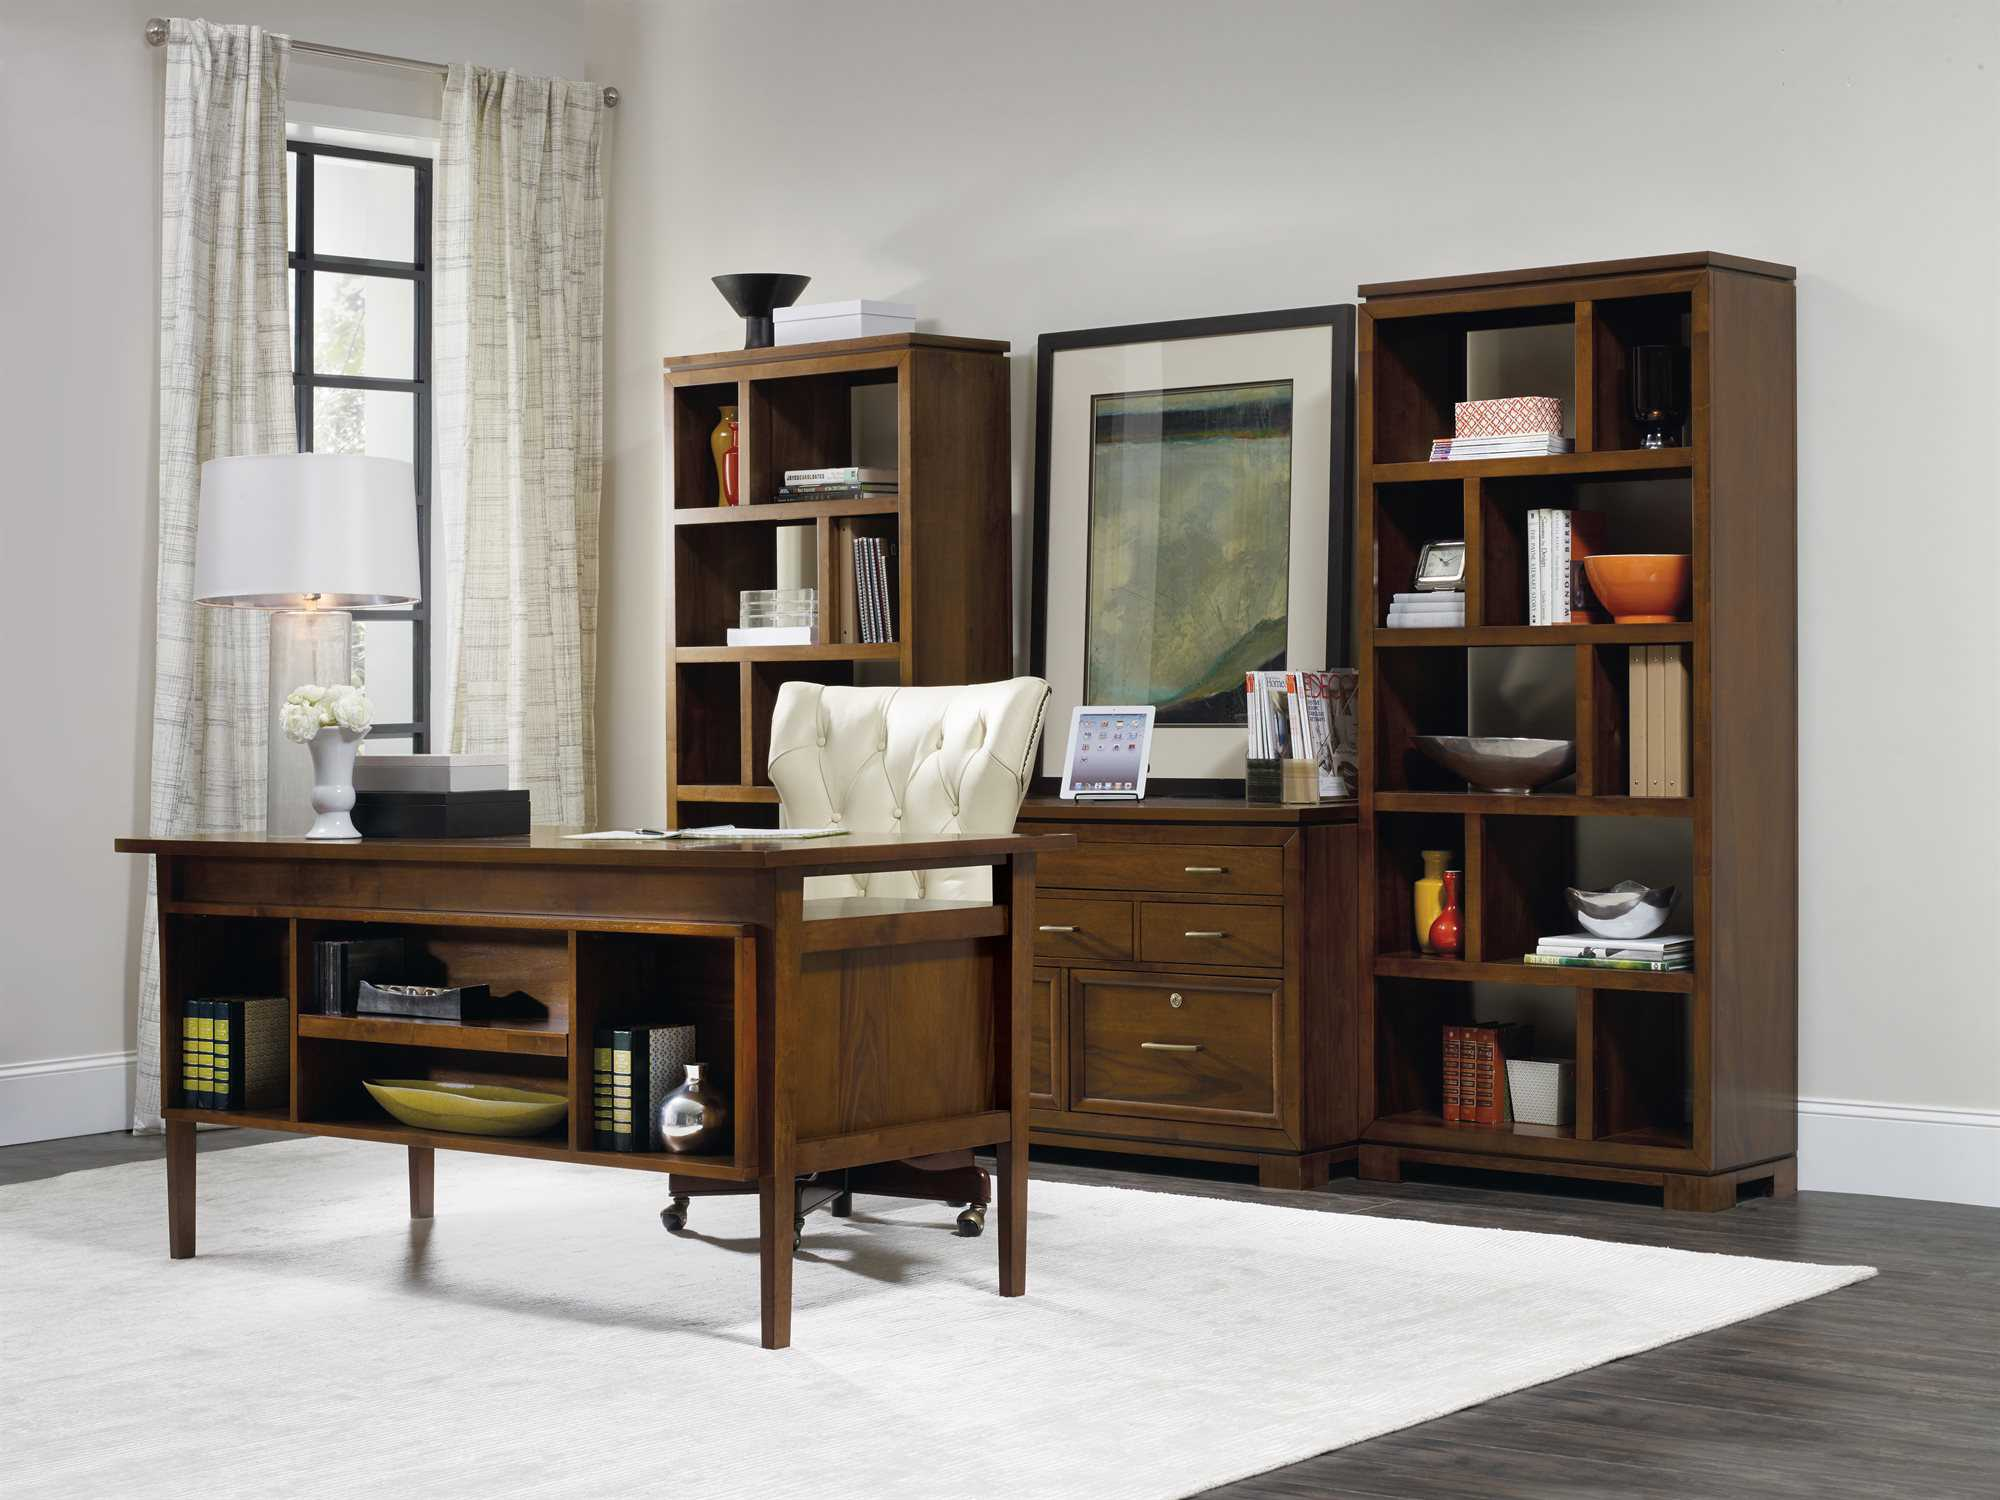 Hom Office Furniture: Hooker Furniture Viewpoint Home Office Set